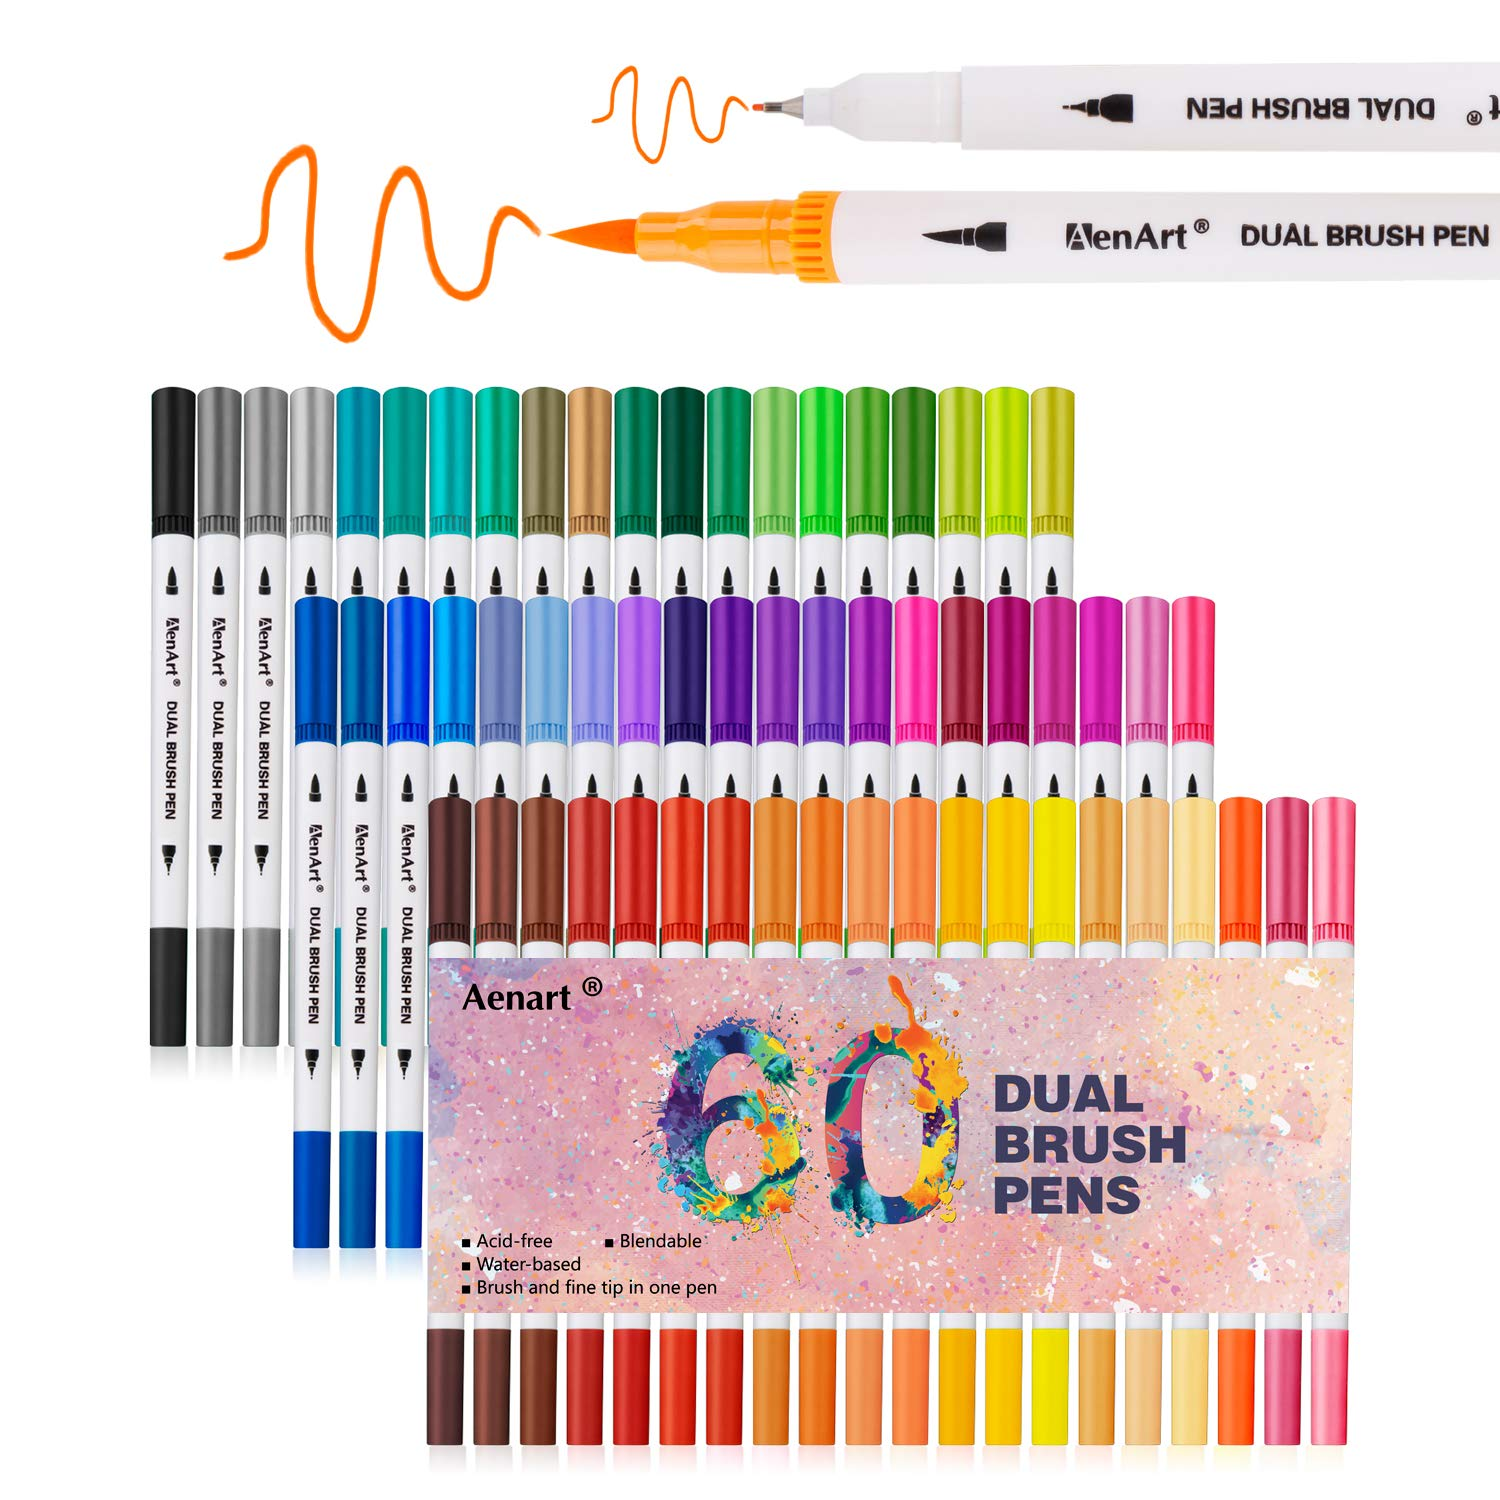 Dual Tip Brush Markers Pen 60 Colors, Fine and Brush Tip Colored Dual Pens for Coloring Books, Drawing, Bullet Journal, Planner, School Art Projects Mdk-DP